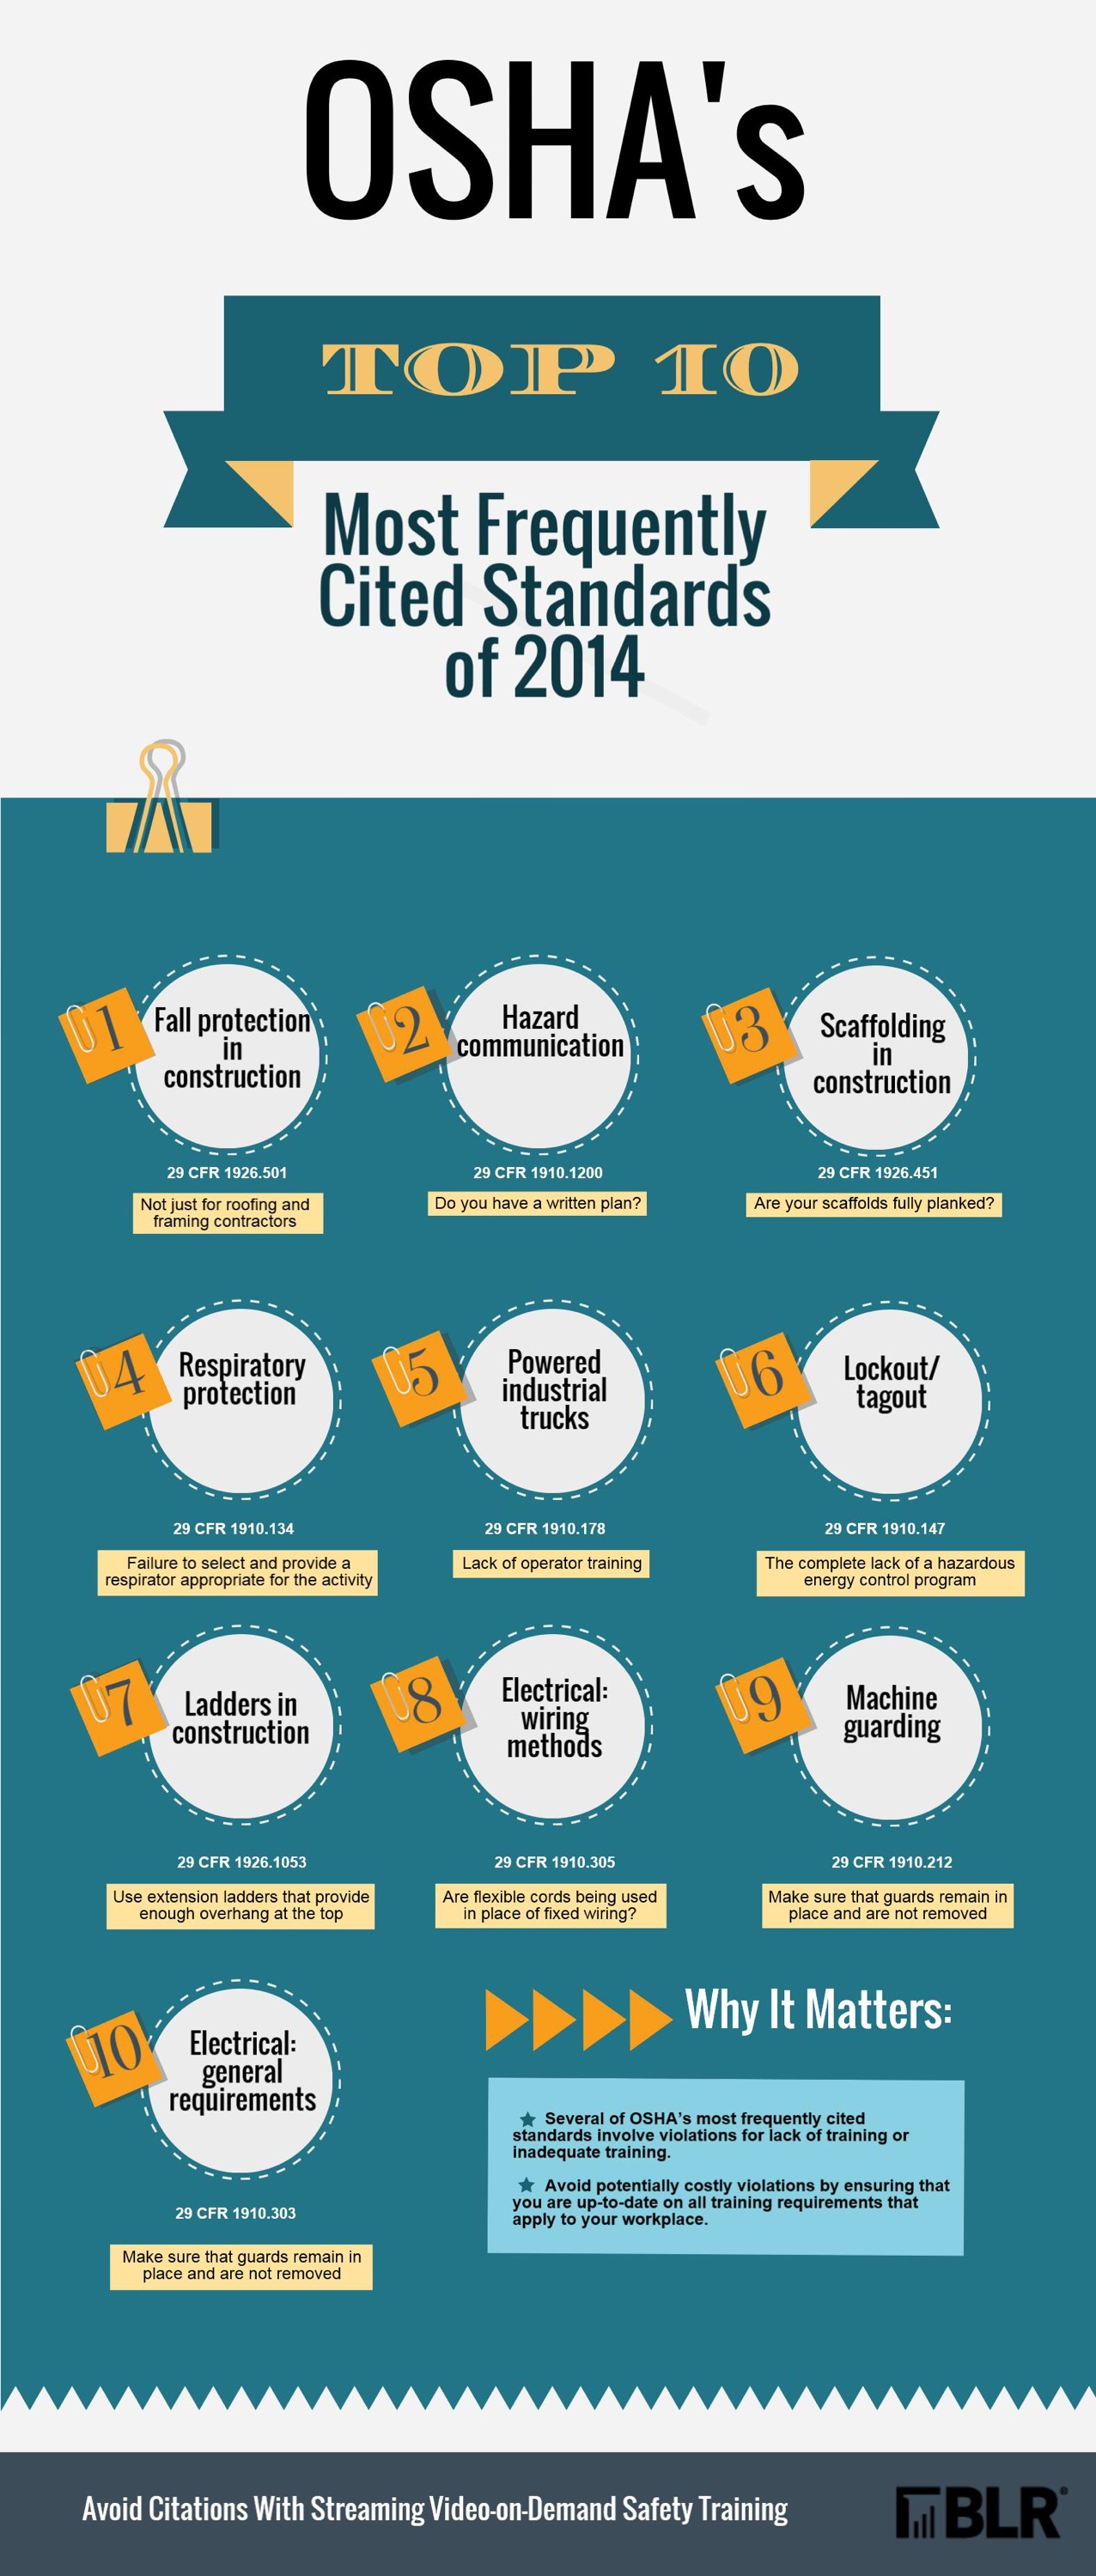 OSHA's Top 10 Most Frequently Cited Standards of 2014